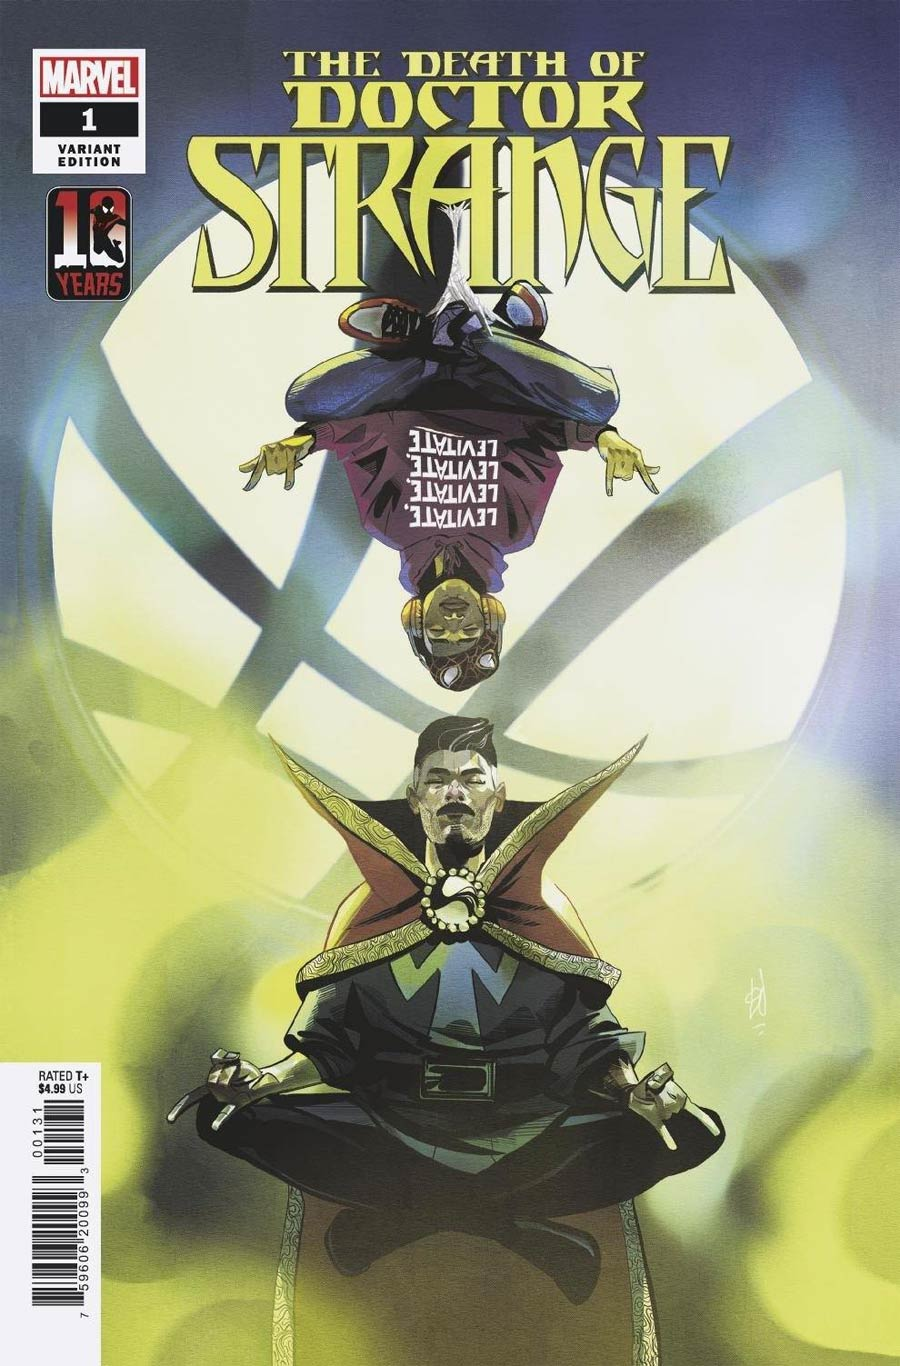 Death Of Doctor Strange #1 Cover B Variant Mike Del Mundo Miles Morales Spider-Man 10th Anniversary Cover